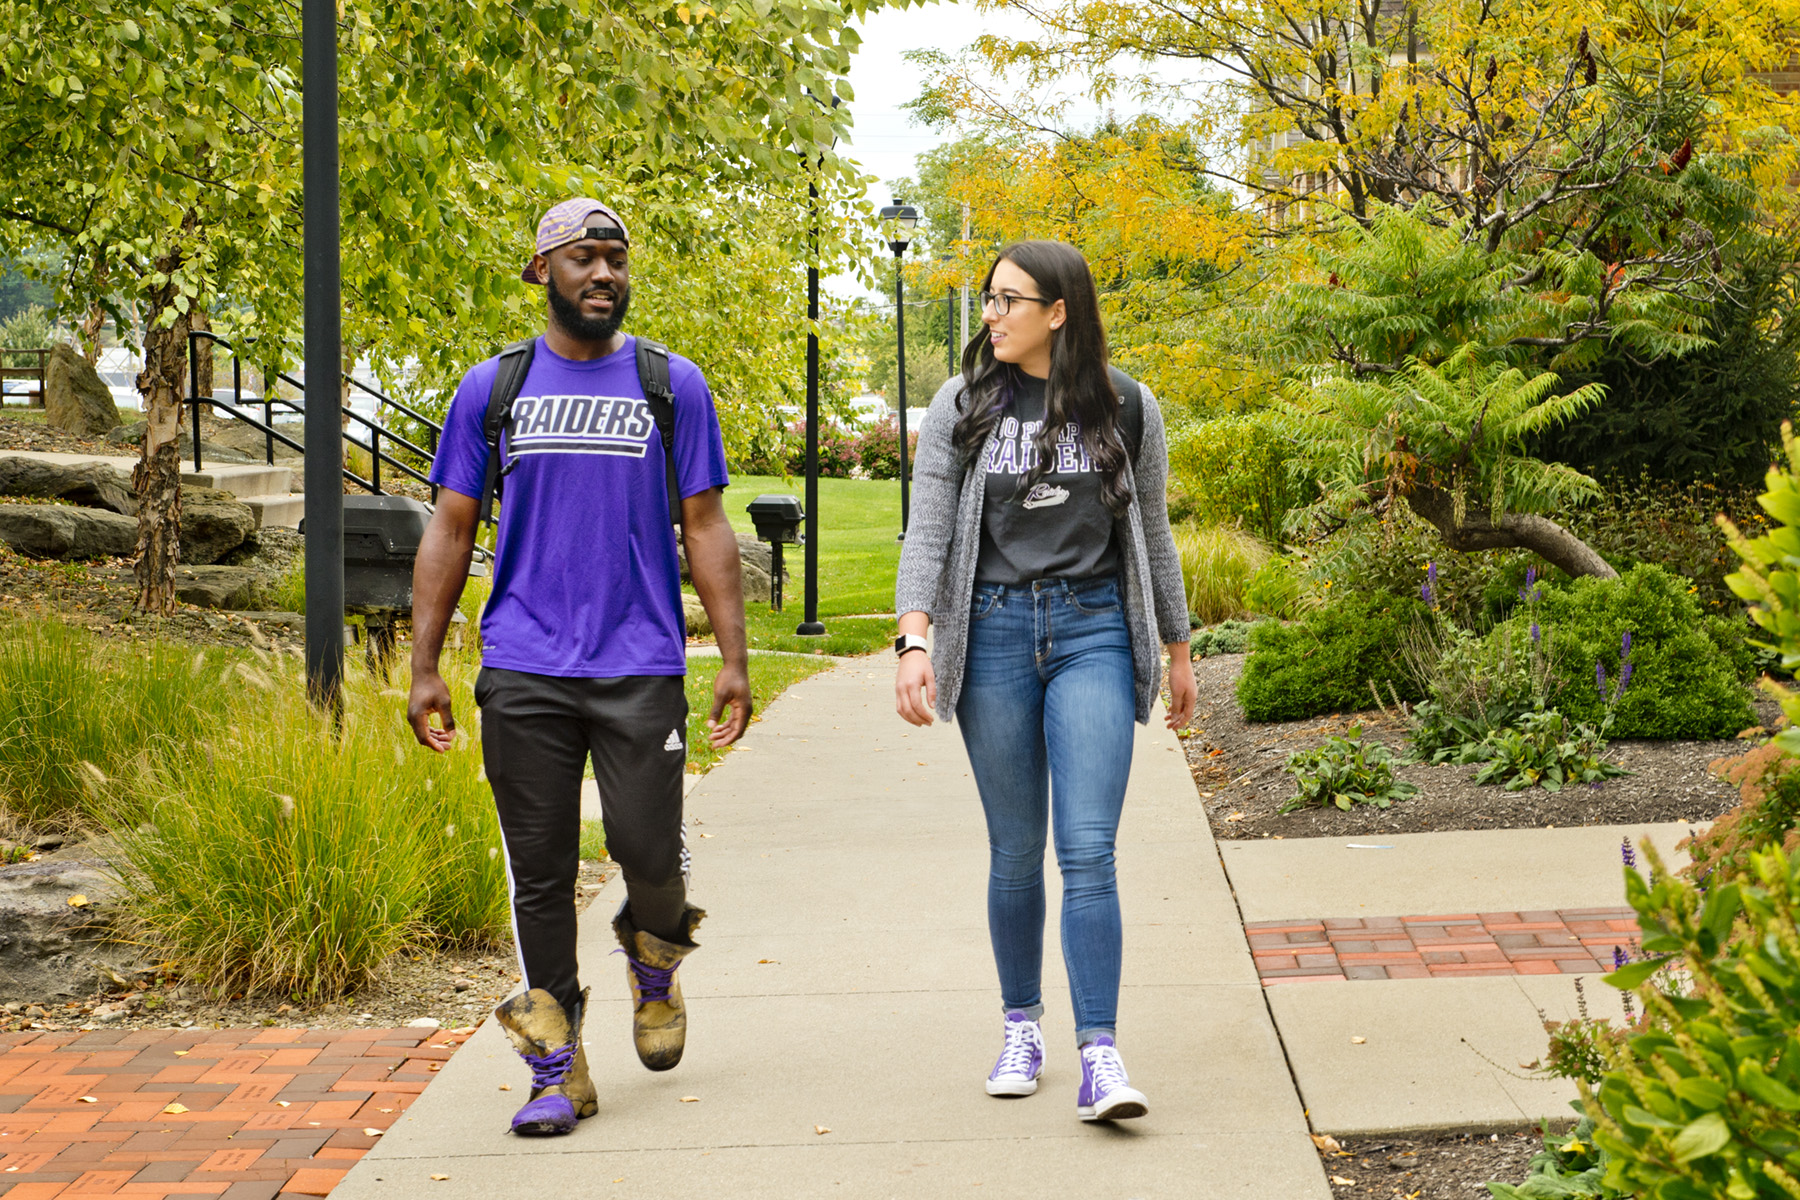 Mount Union students walking on campus